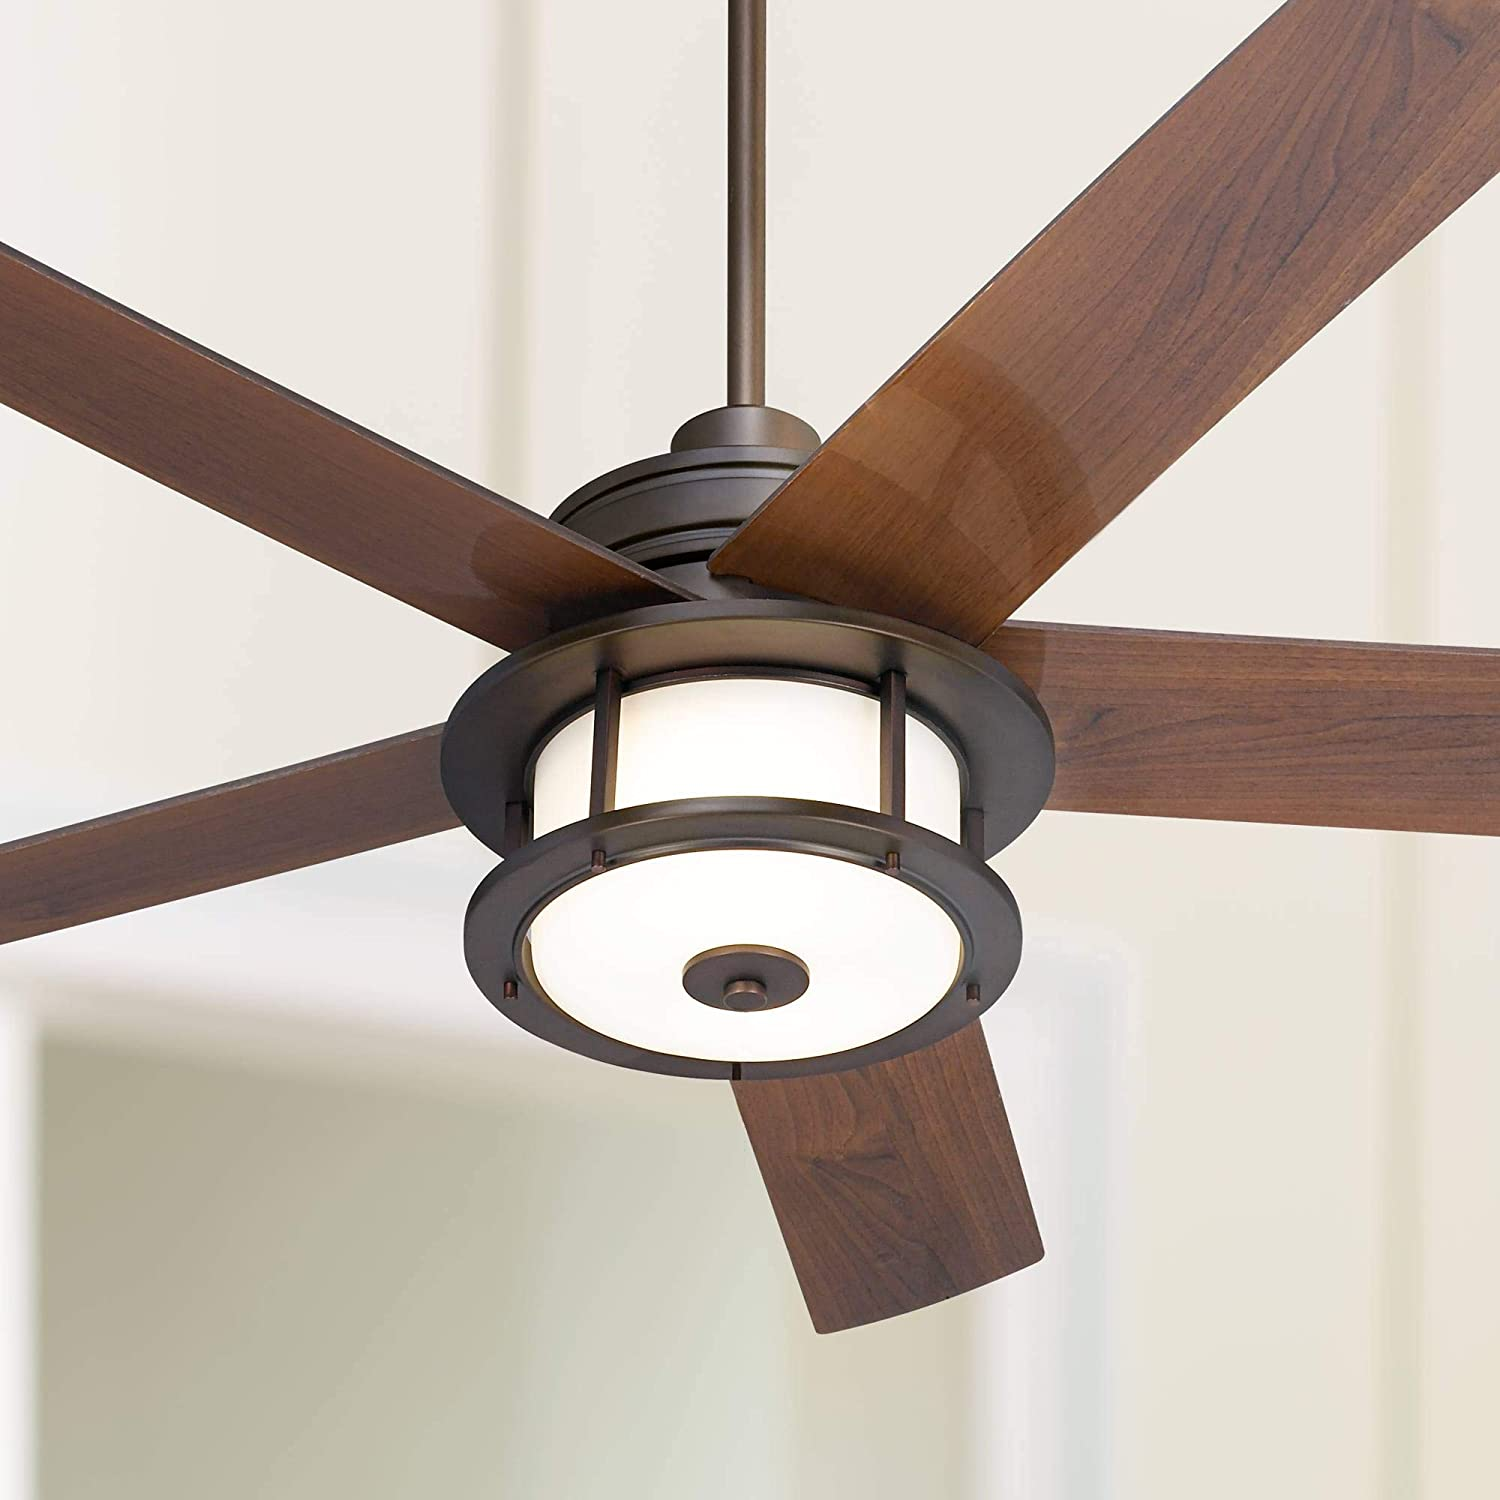 60 Casa Largo Modern Outdoor Ceiling Fan With Light Led Oil Brushed Bronze Dark Walnut Blades Frosted White Glass Damp Rated For Patio Porch Casa Vieja Amazon Com